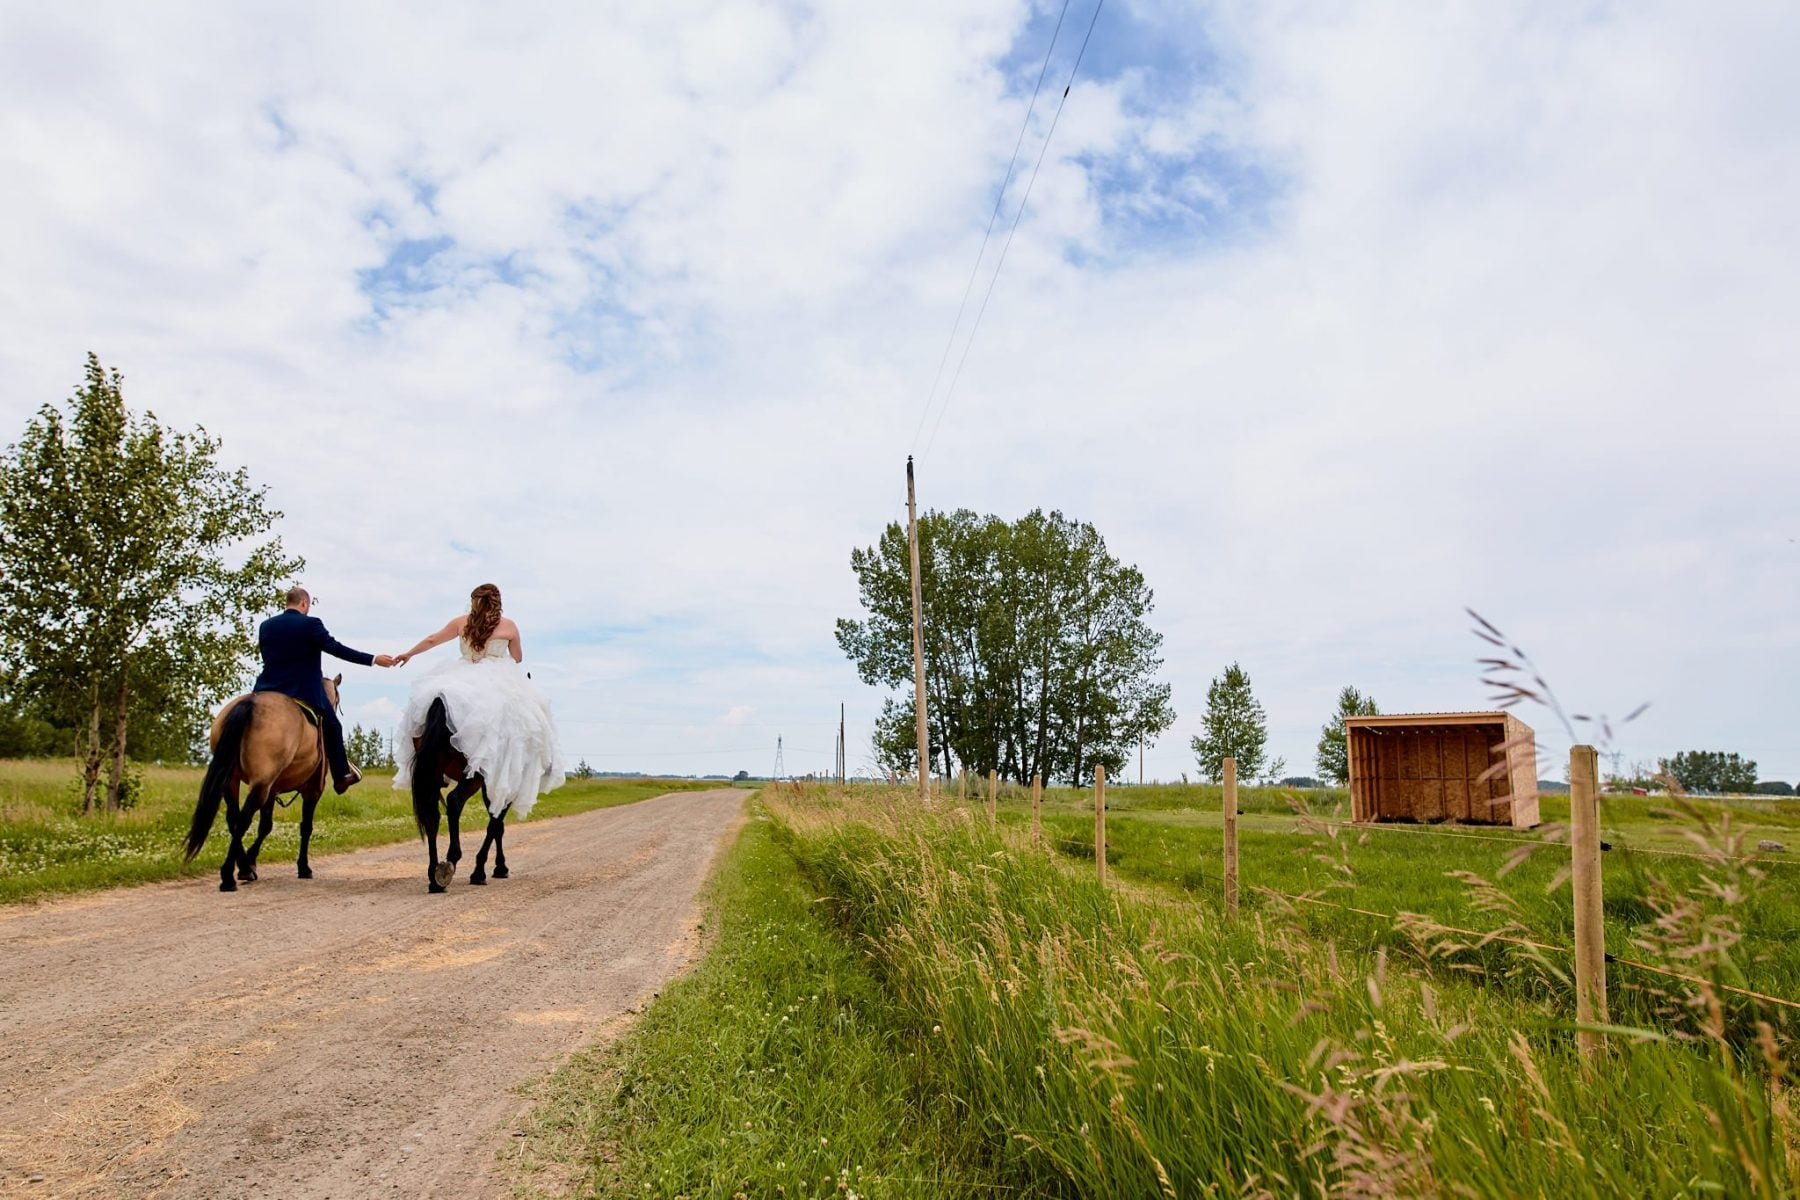 Wedding Photography barn horse country rustic alberta